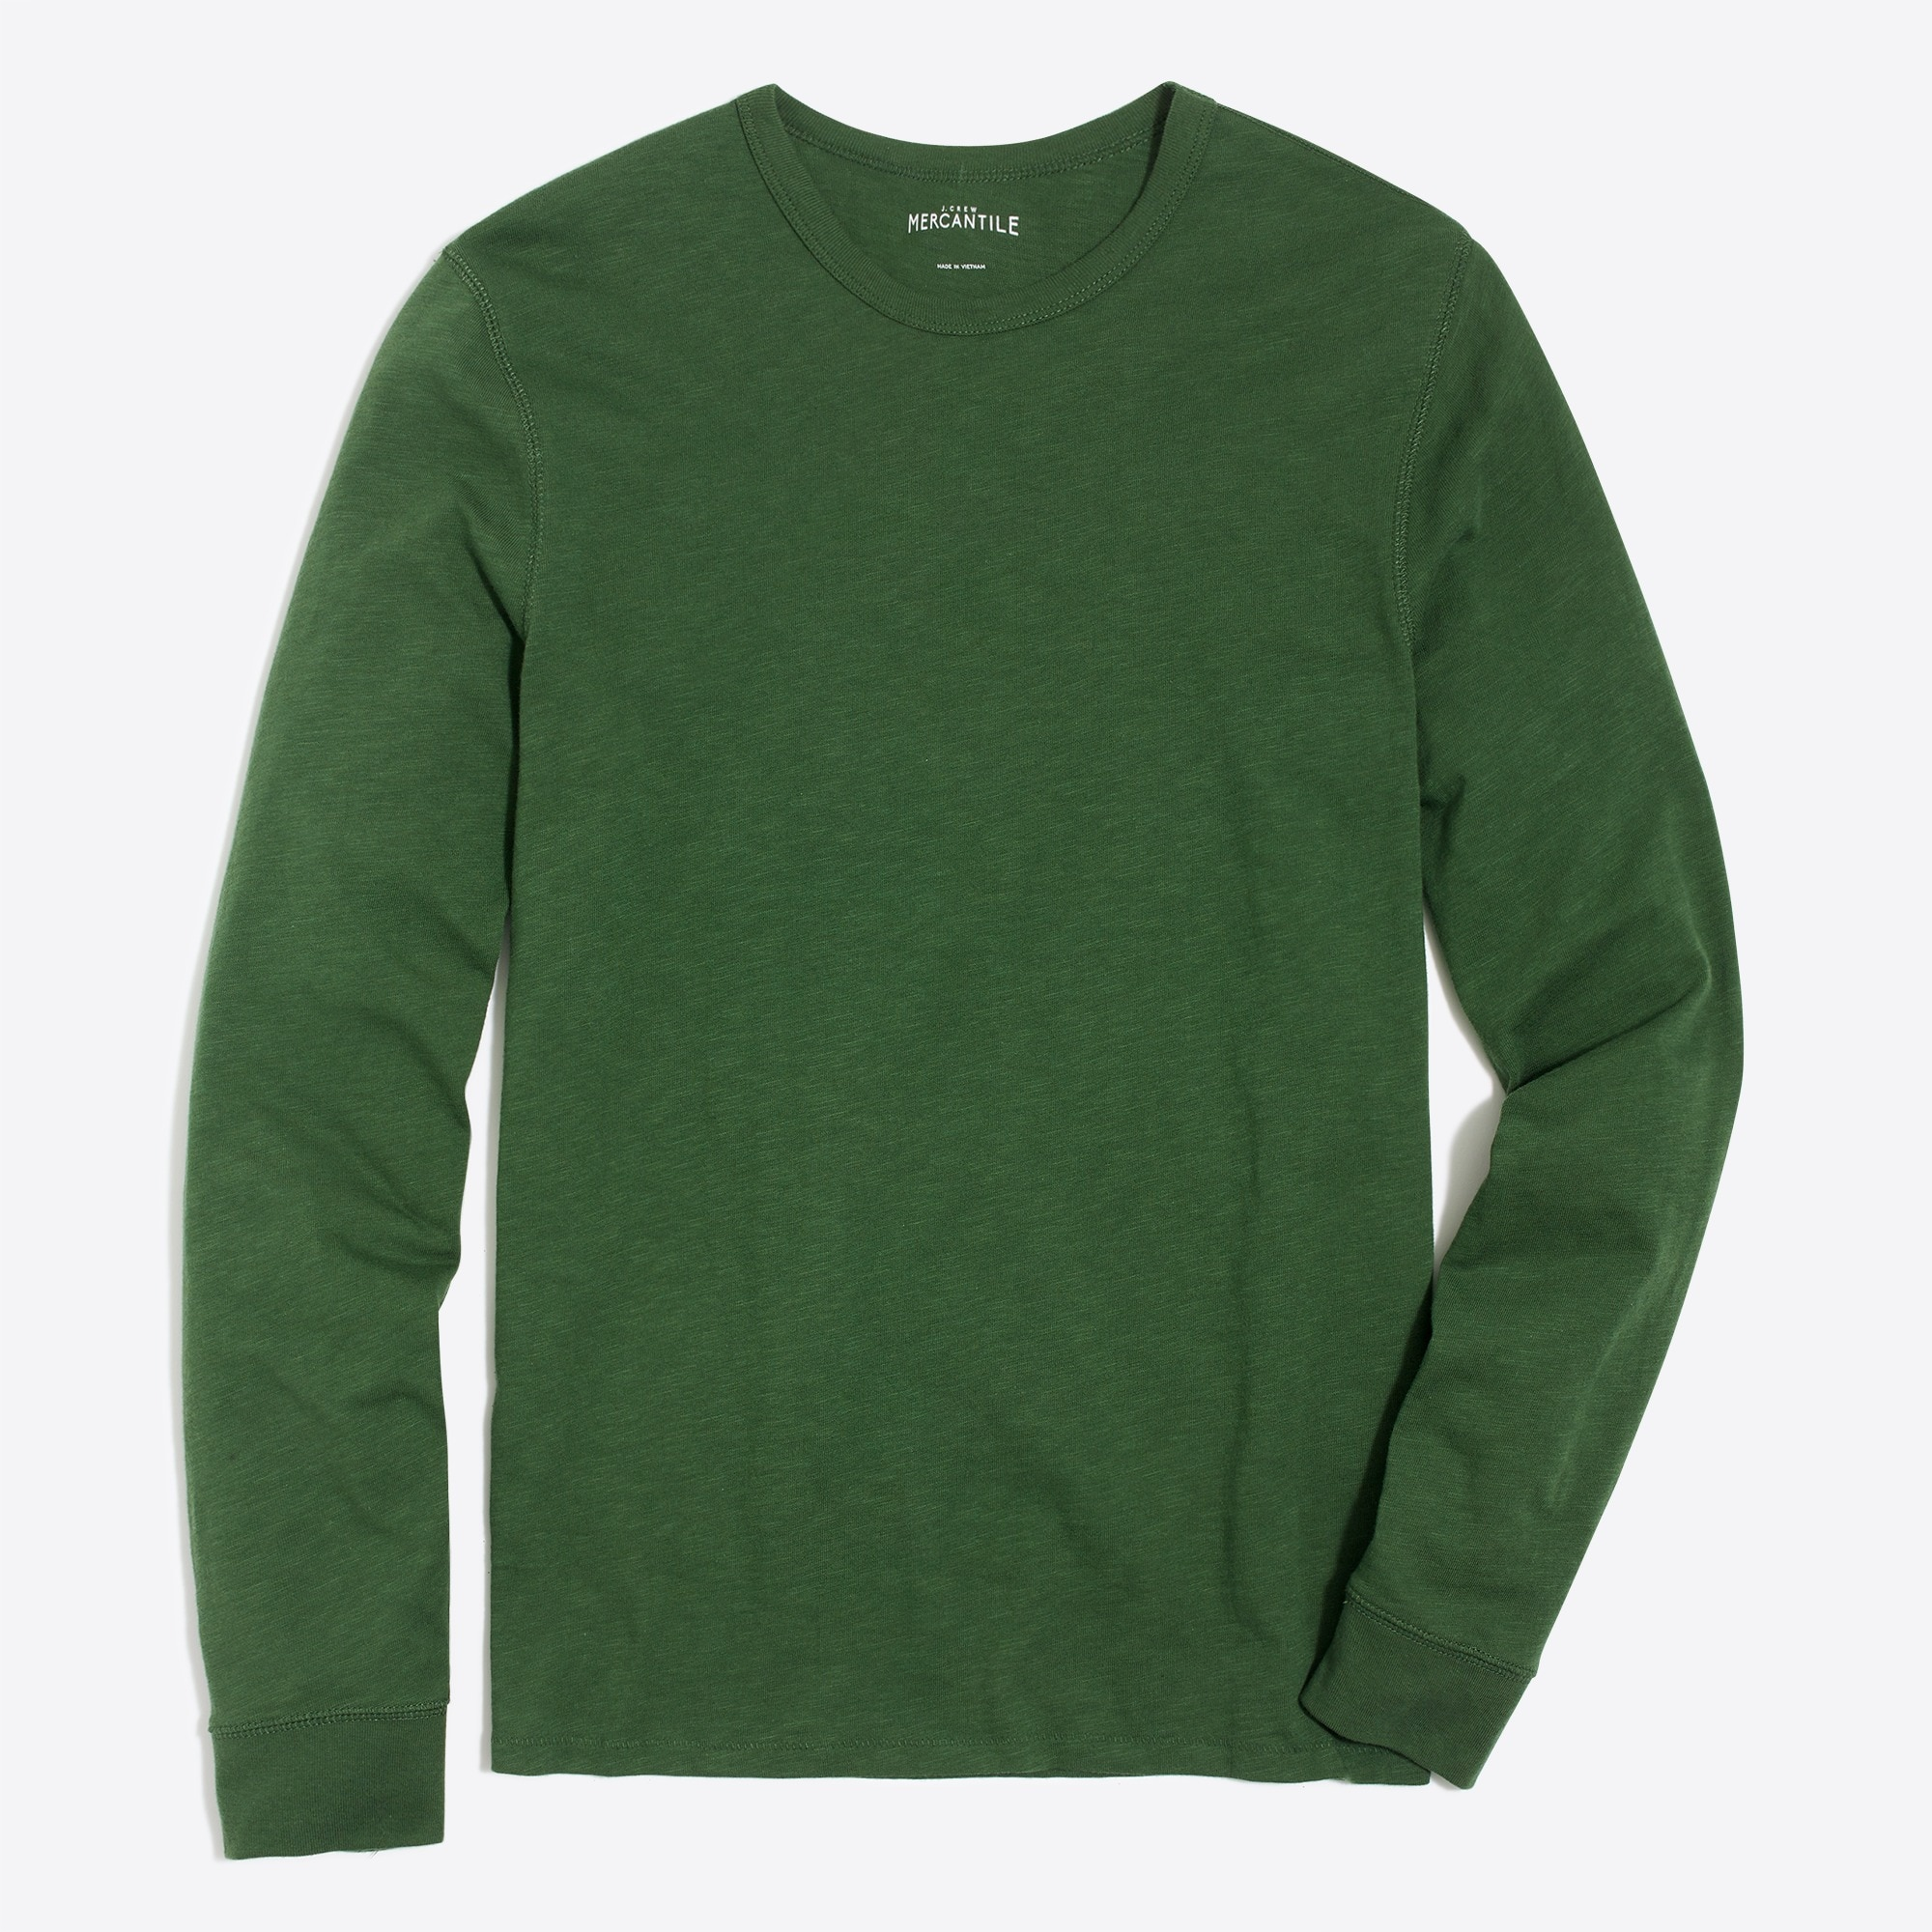 long-sleeve slub cotton t-shirt : factorymen long sleeve tees